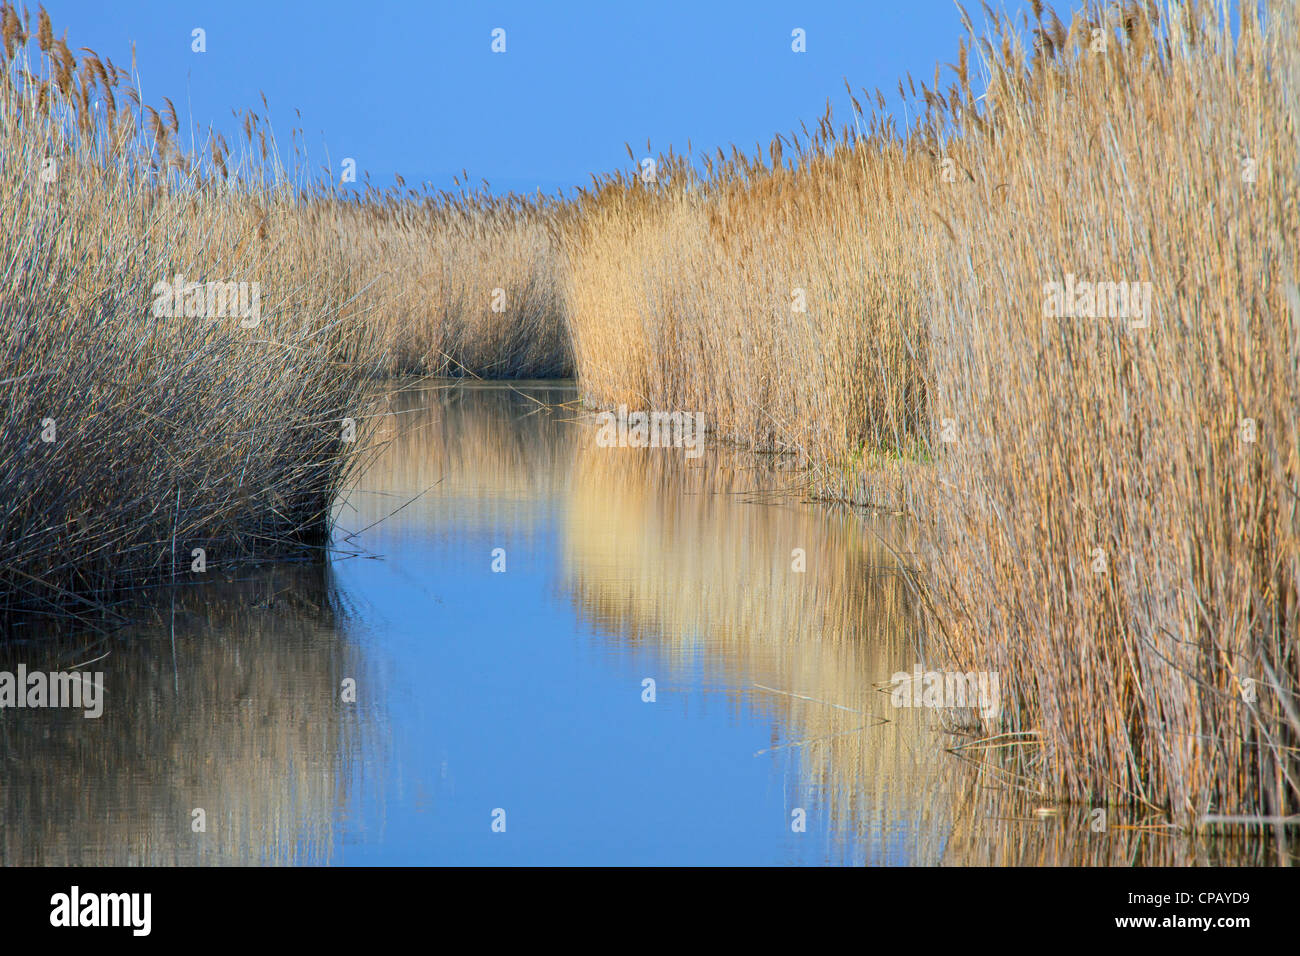 Common reed (Phragmites australis / Phragmites communis) reedbed in wetland, Germany - Stock Image